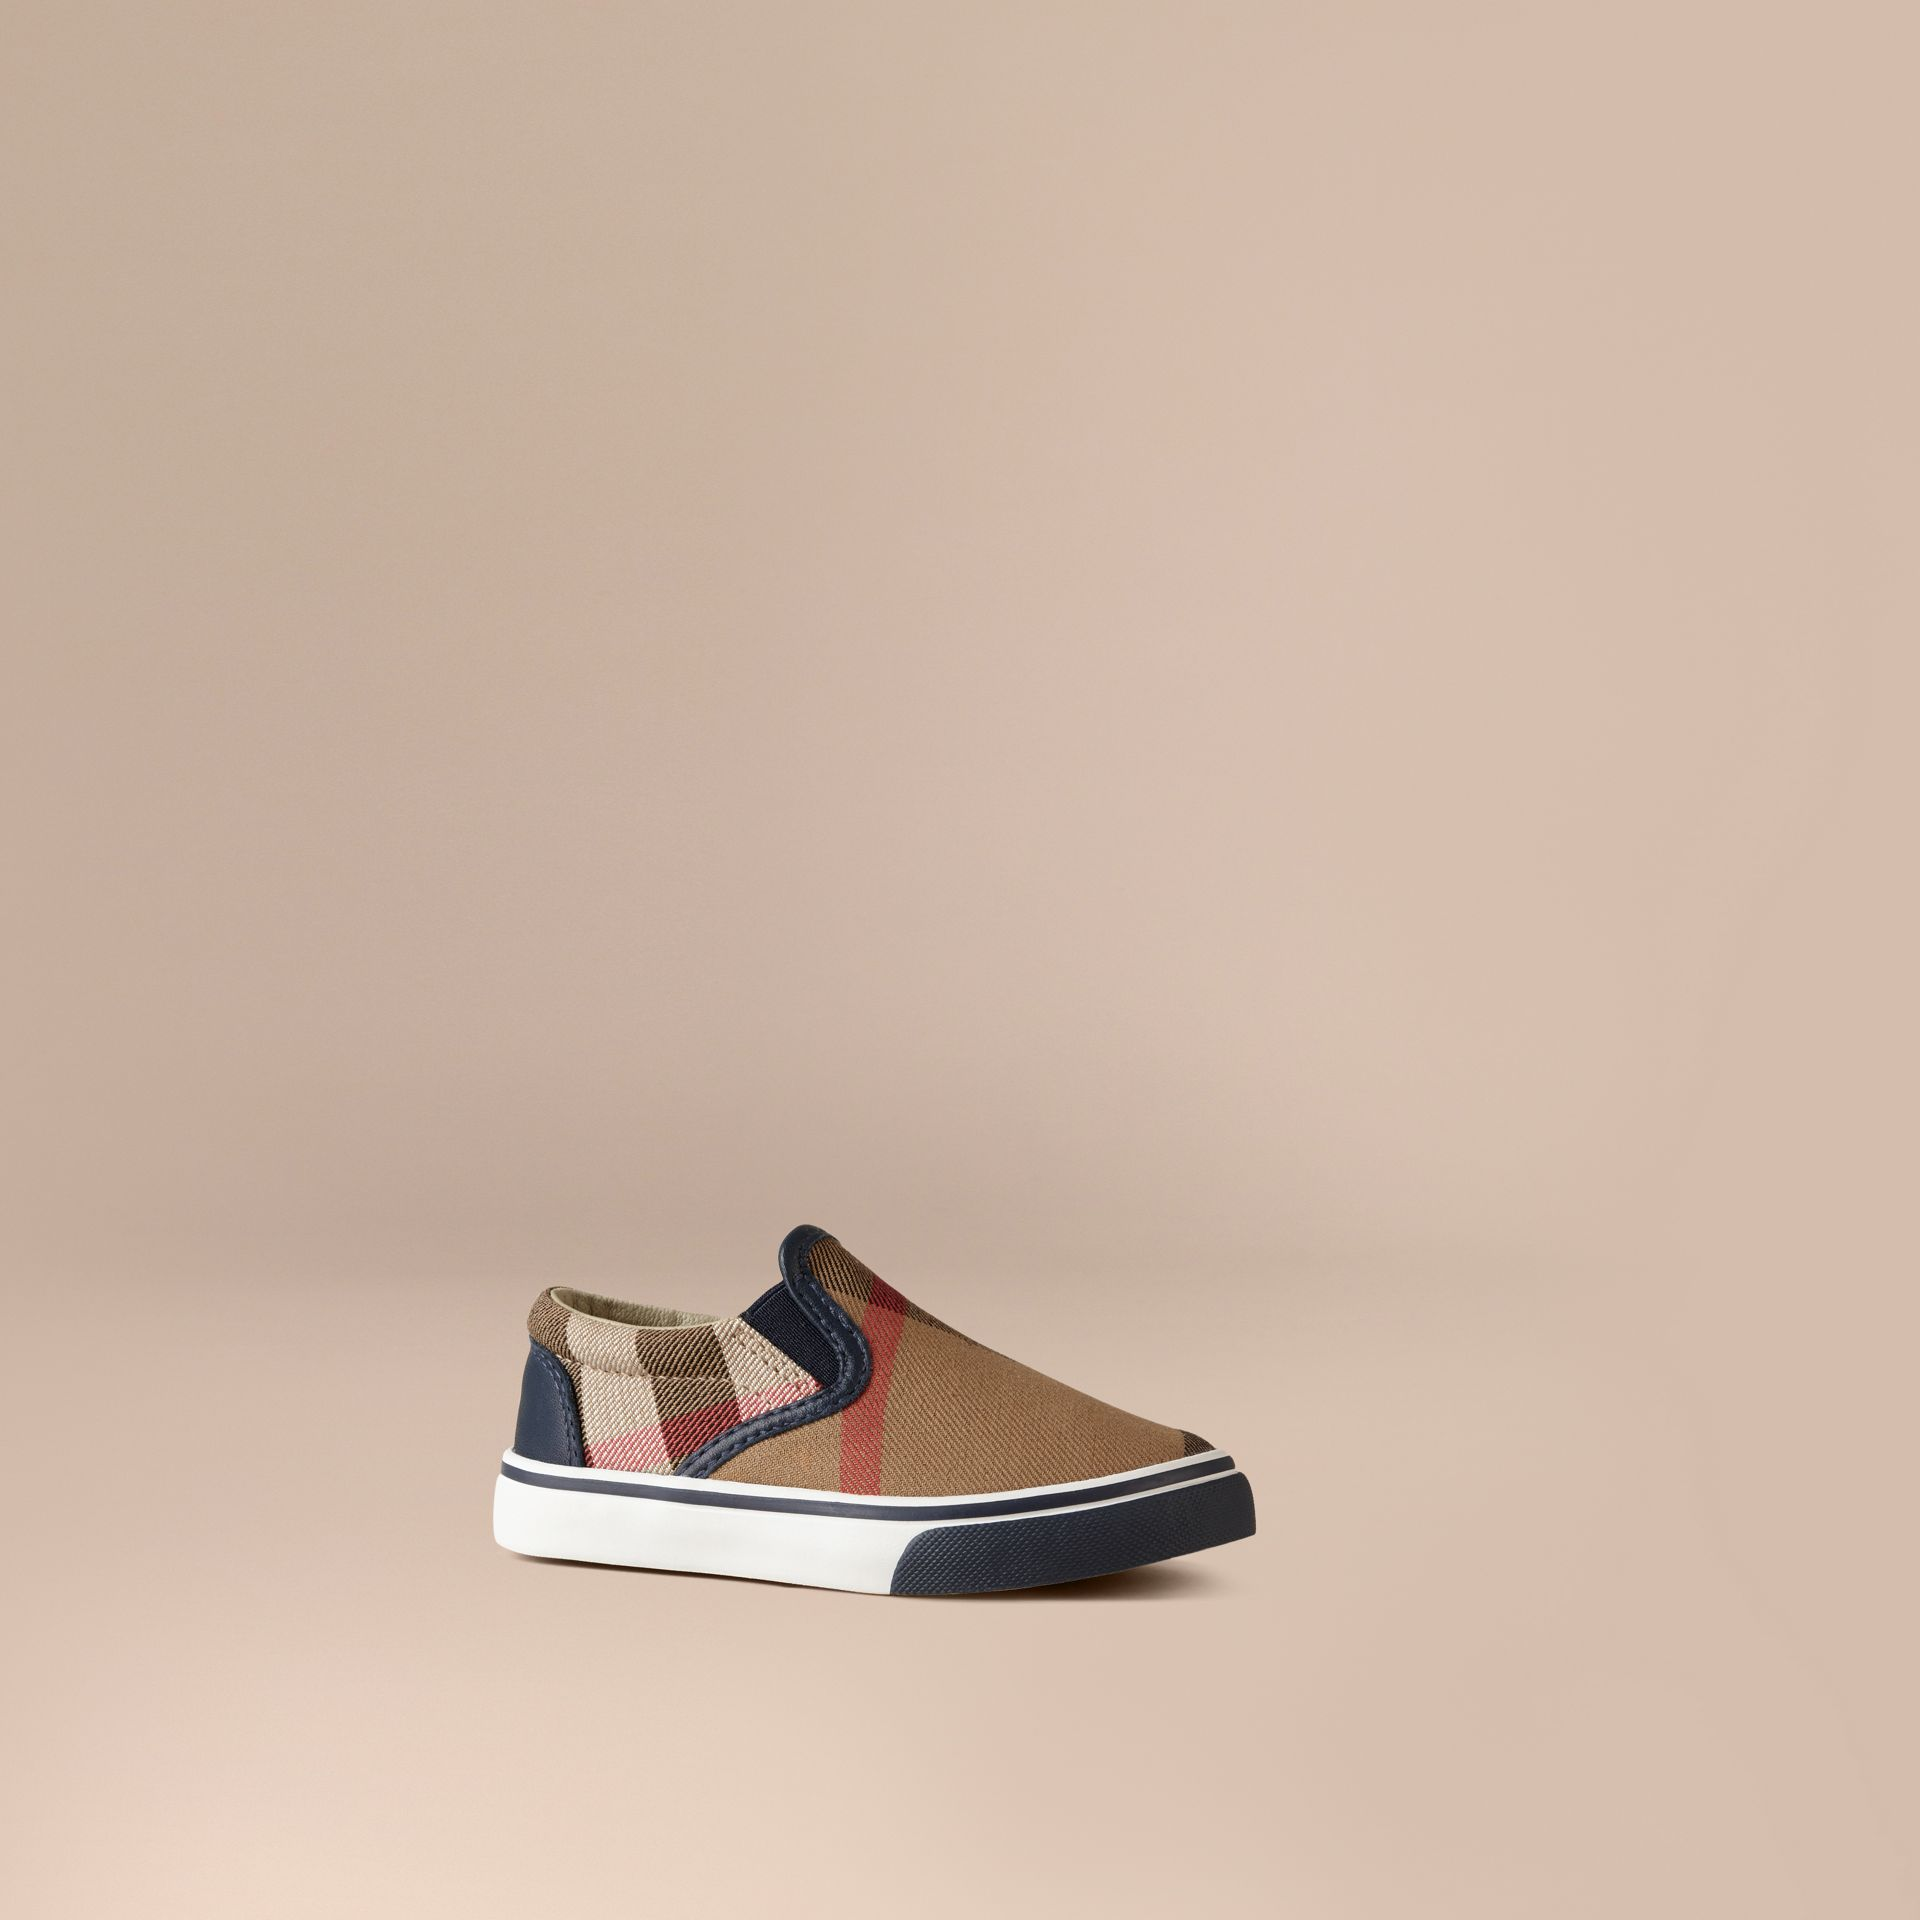 House Check Cotton Slip-On Trainers in Navy | Burberry - gallery image 1